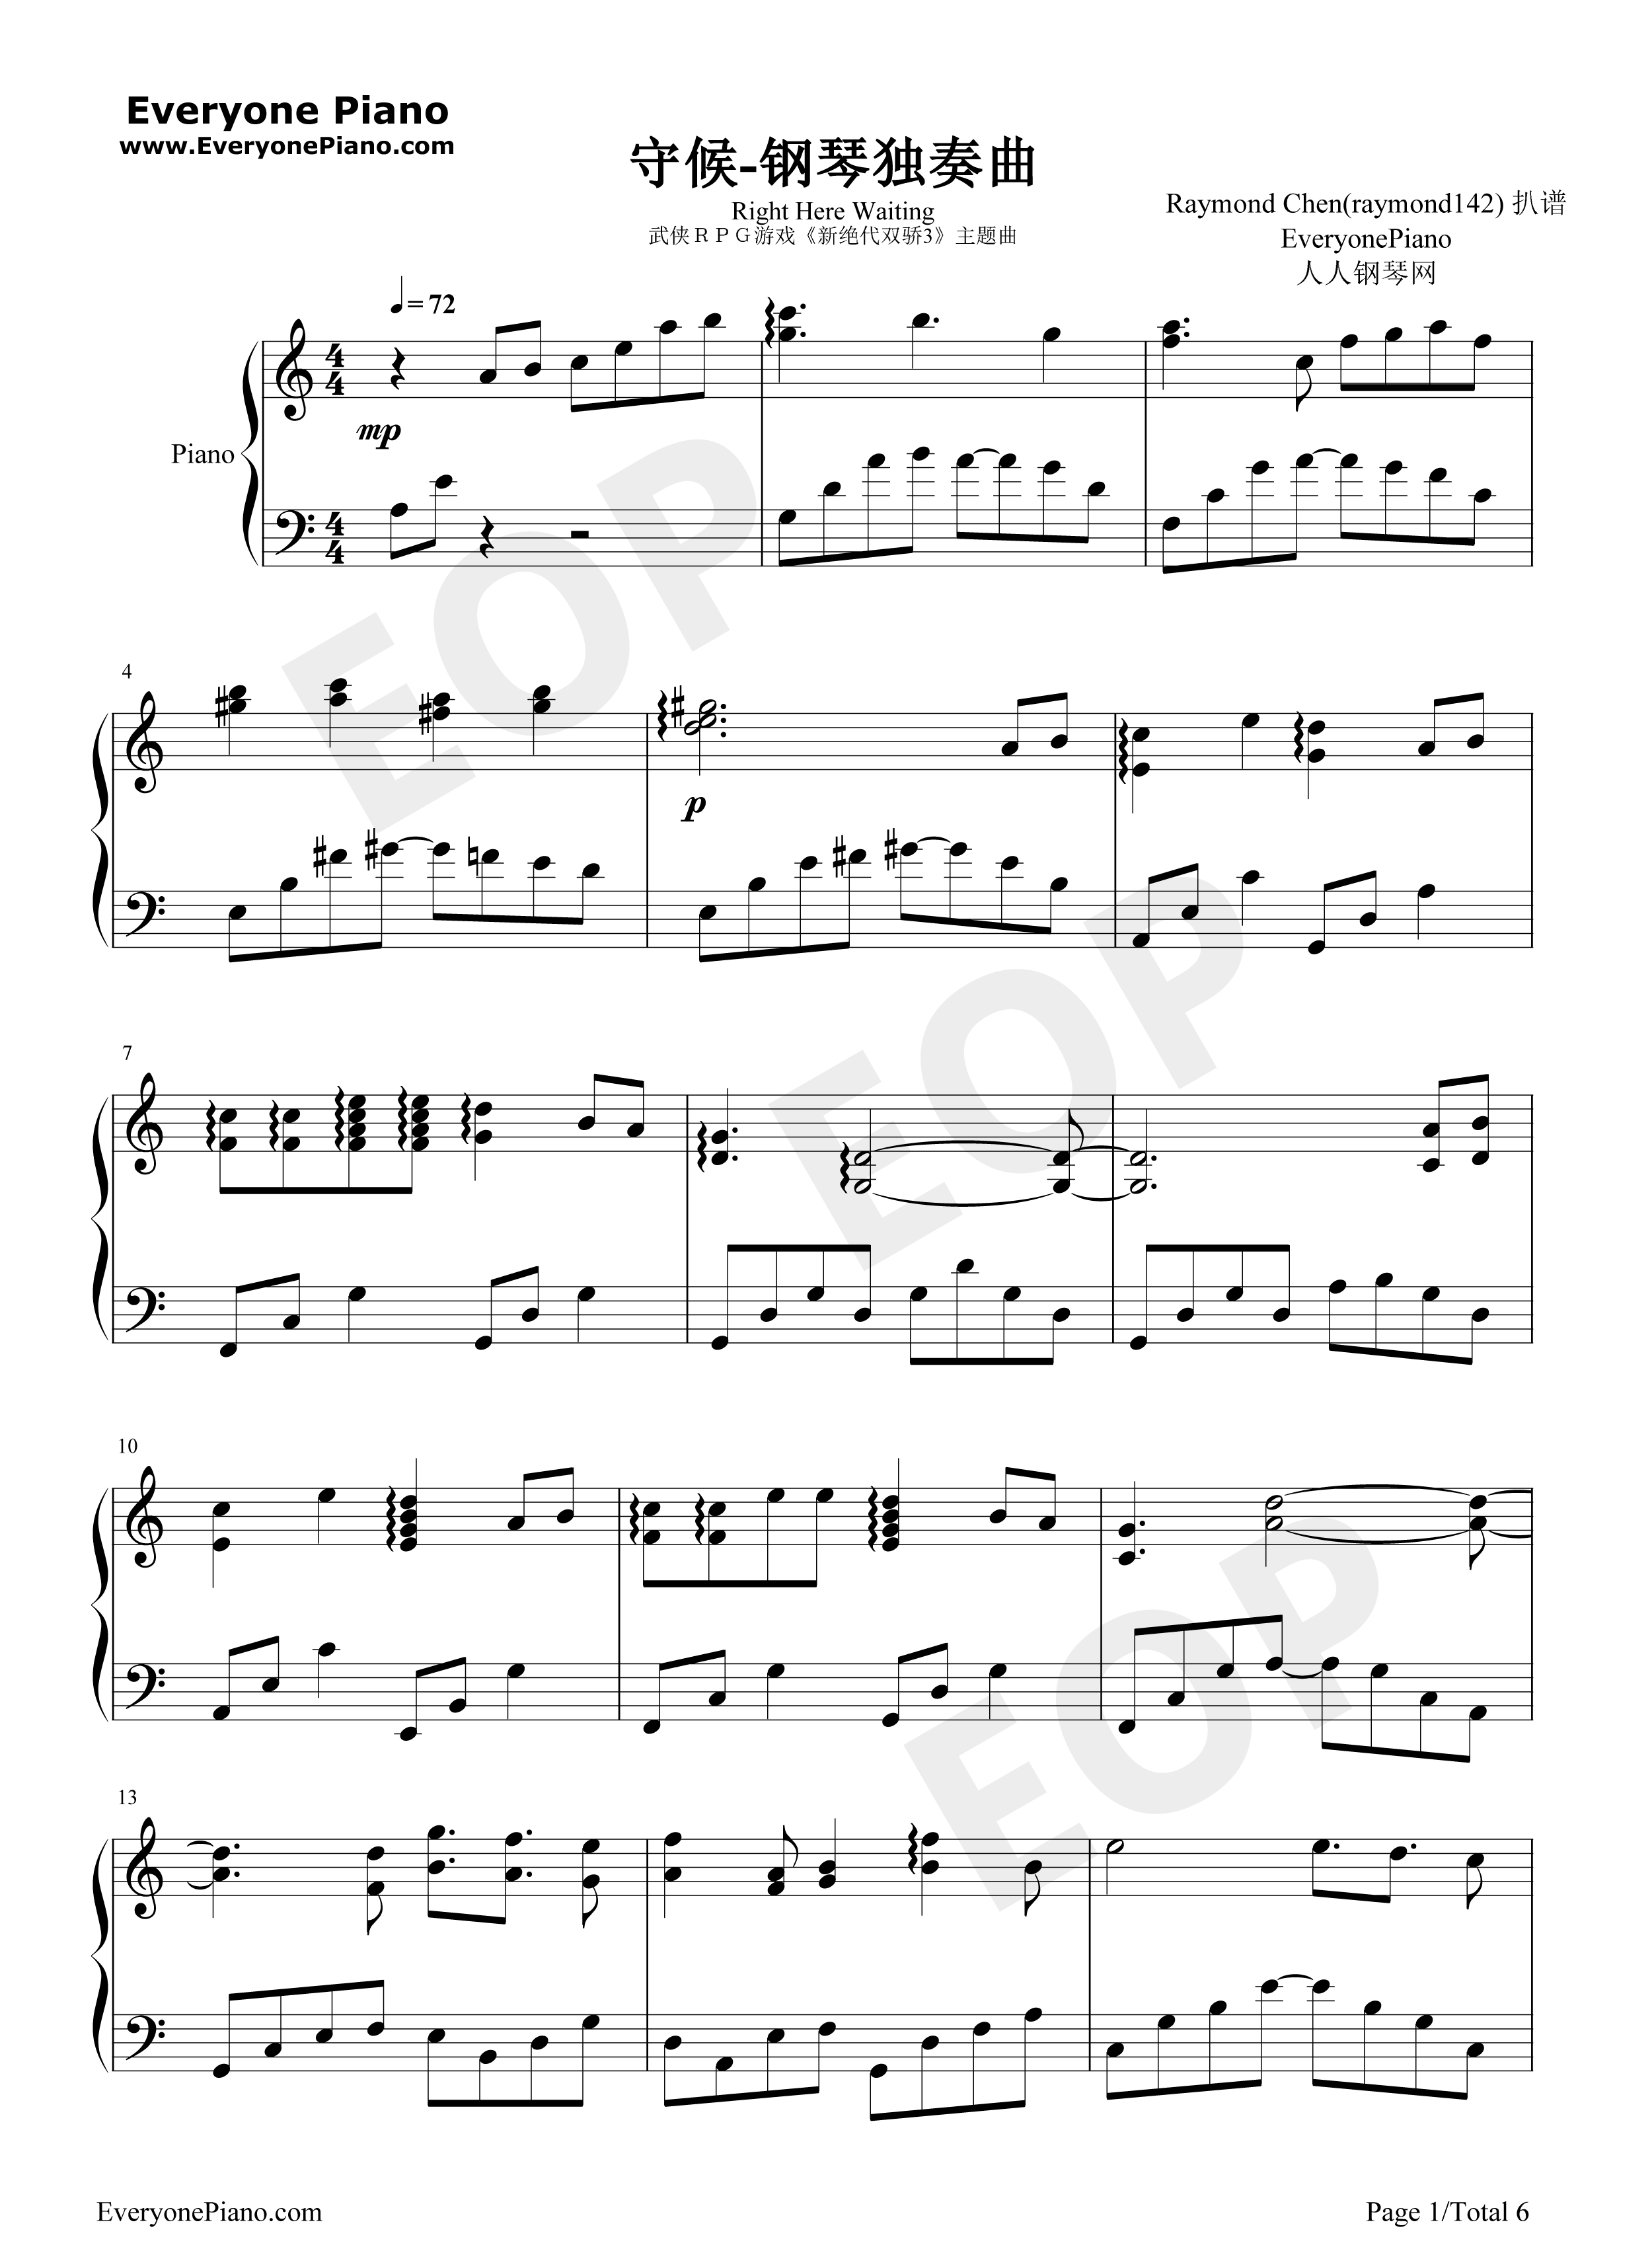 right here waiting for you sheet music pdf